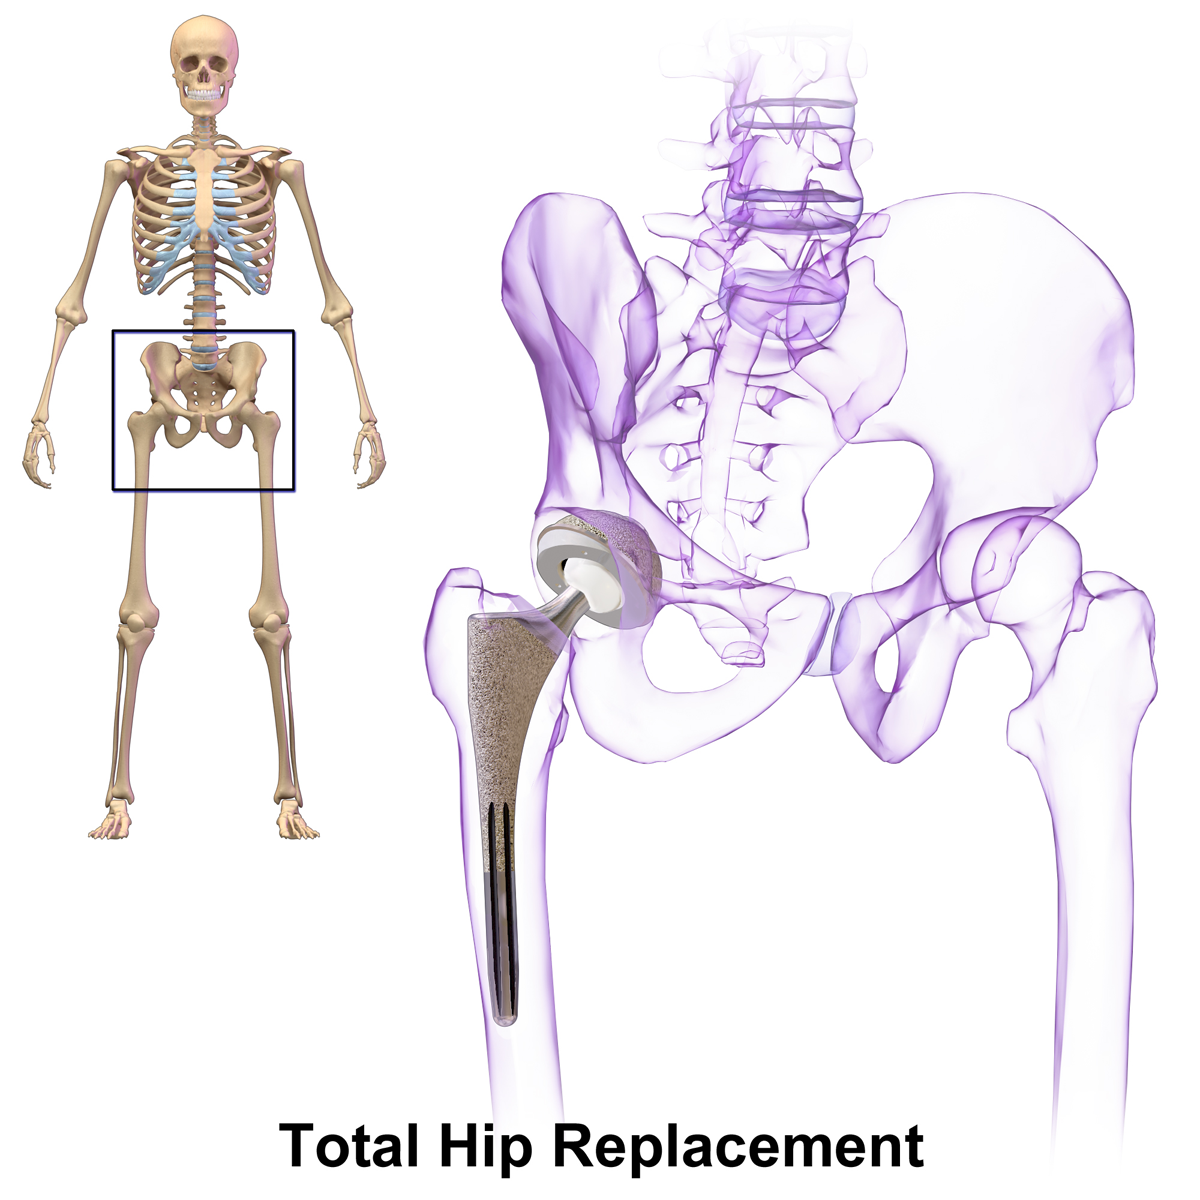 Diagram of Total Hip Replacement